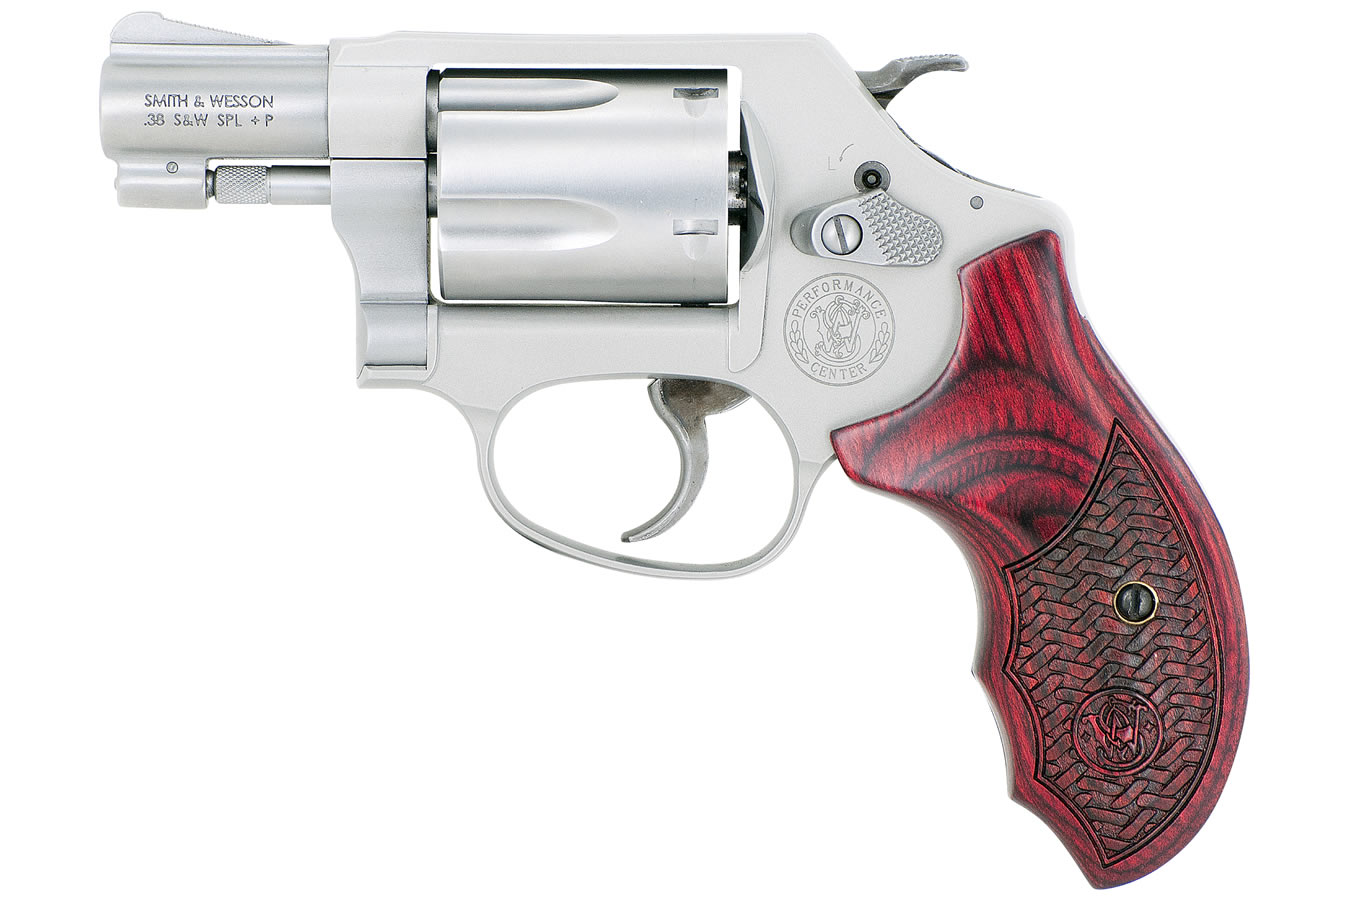 637 PERFORMANCE CENTER 38 SPECIAL